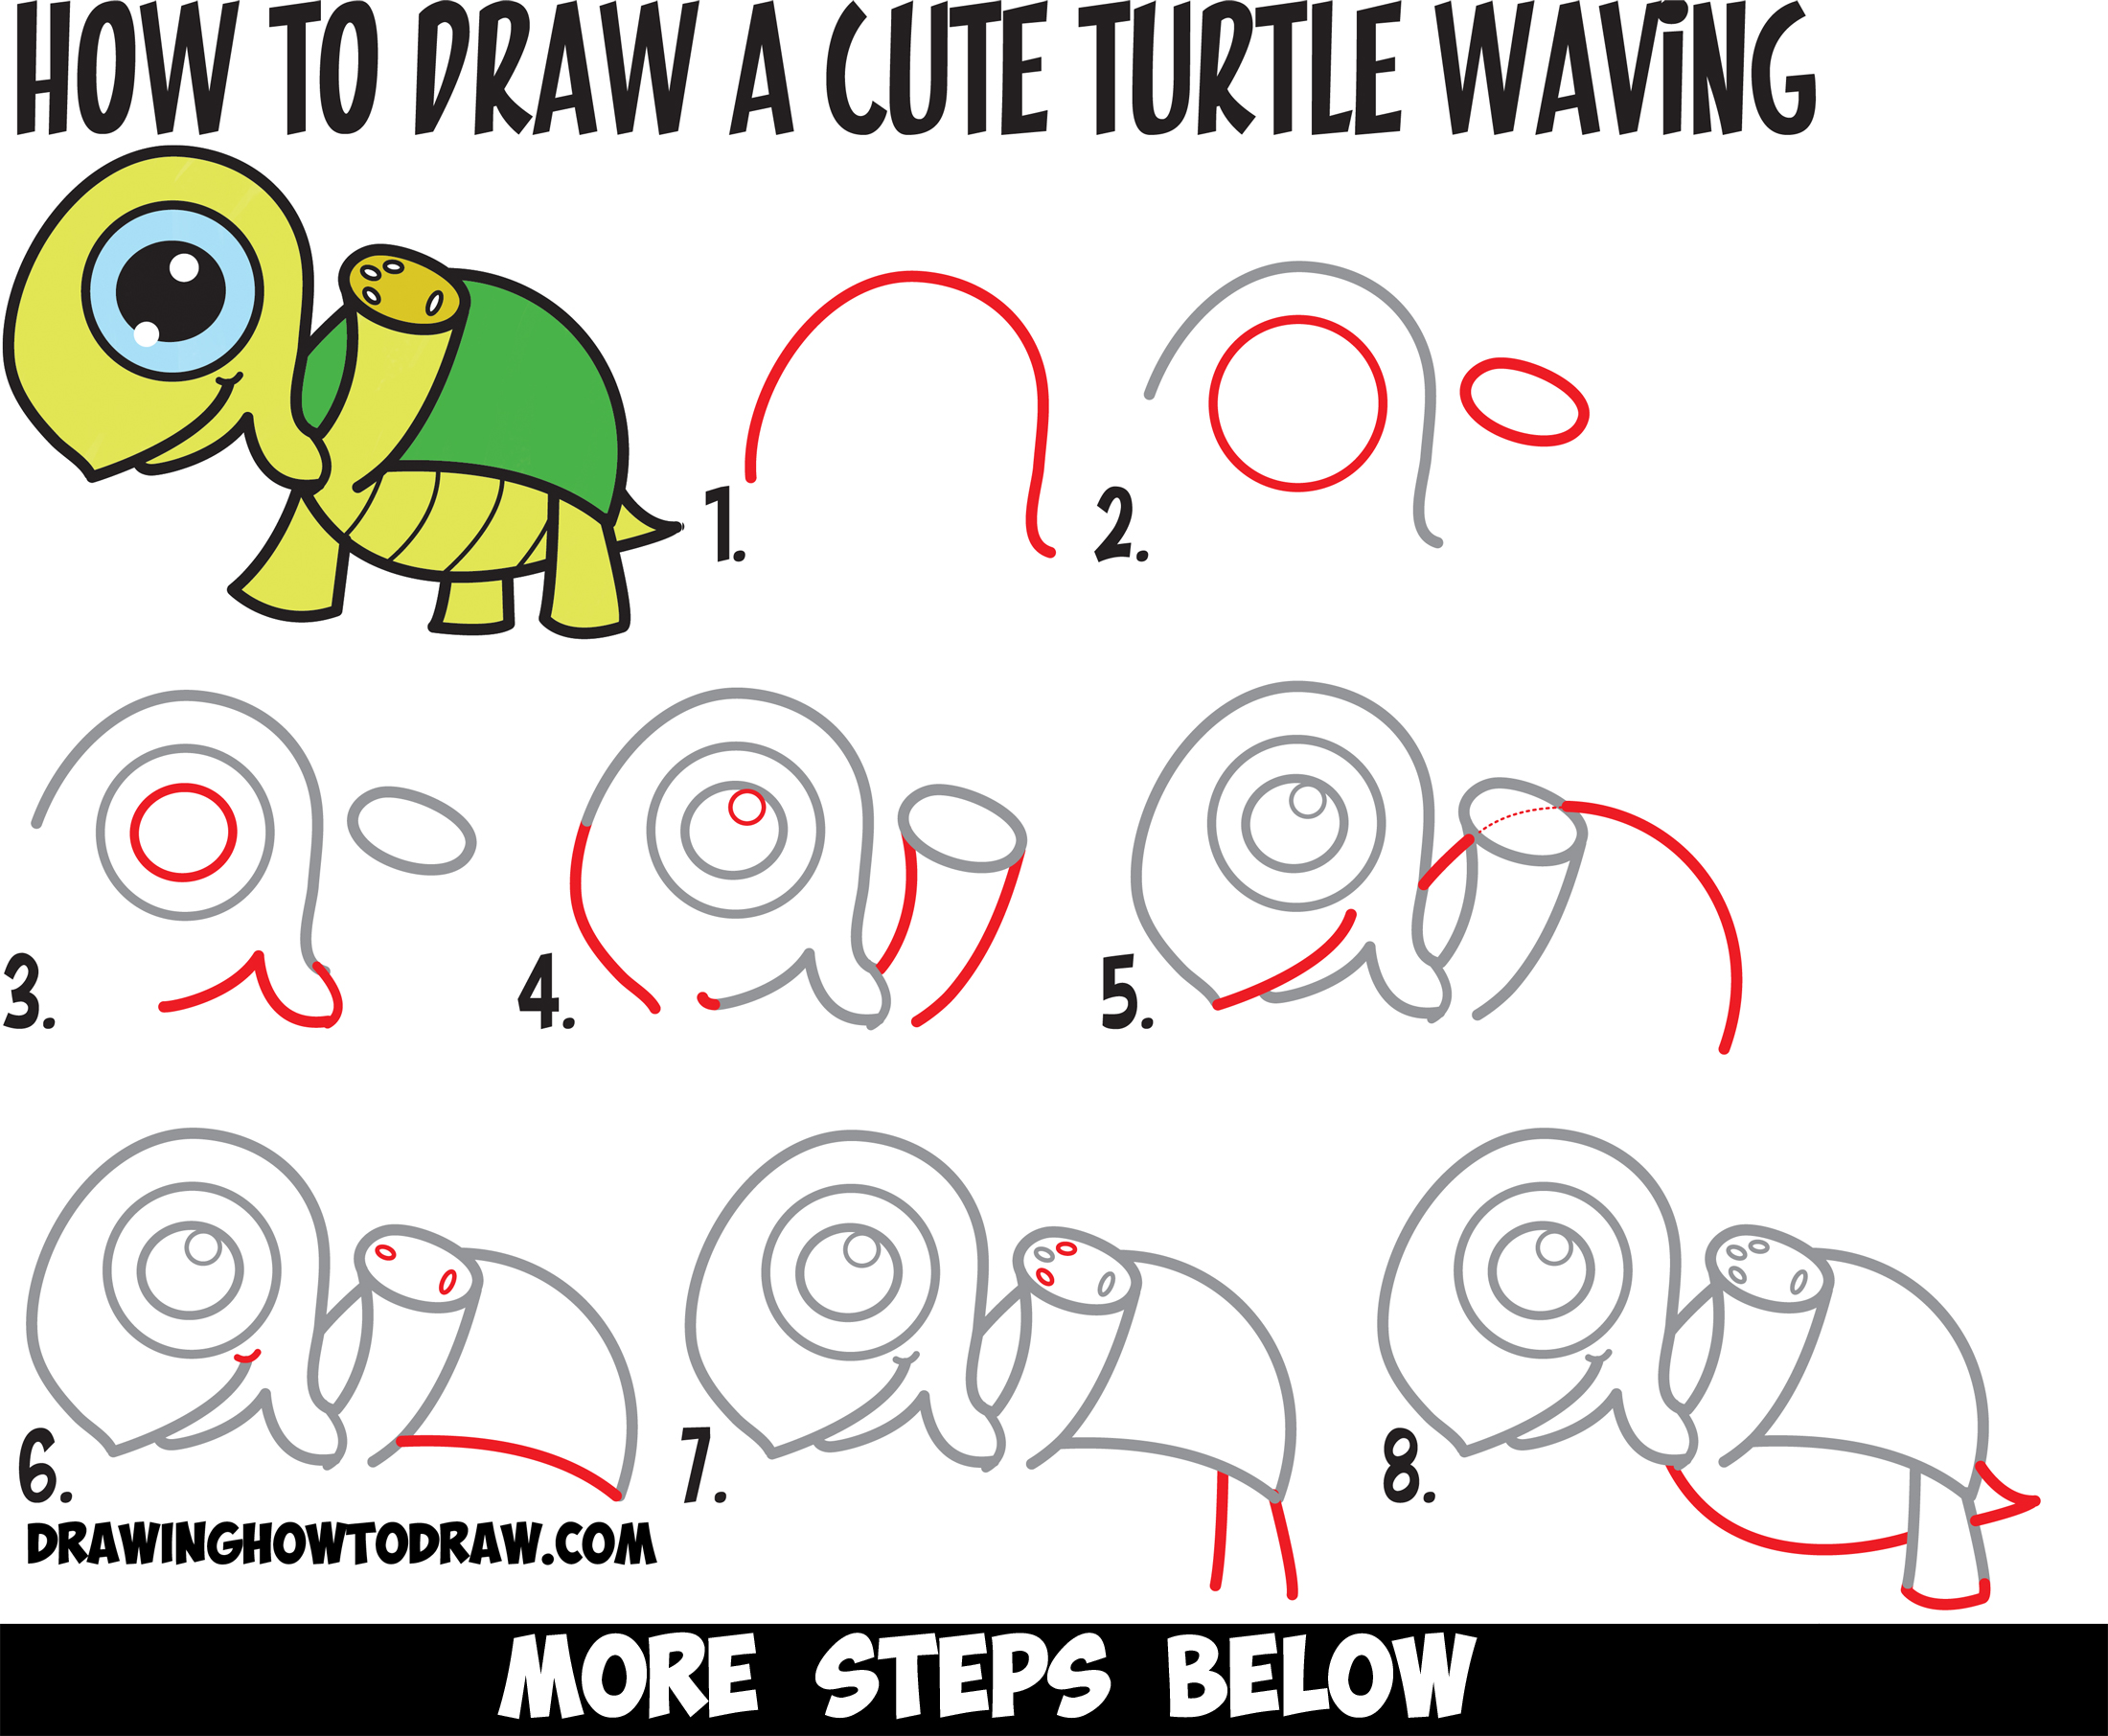 Uncategorized How To Draw A Turtle For Kids learn how to draw a cute cartoon turtle waving with easy step by kawaii chibi step